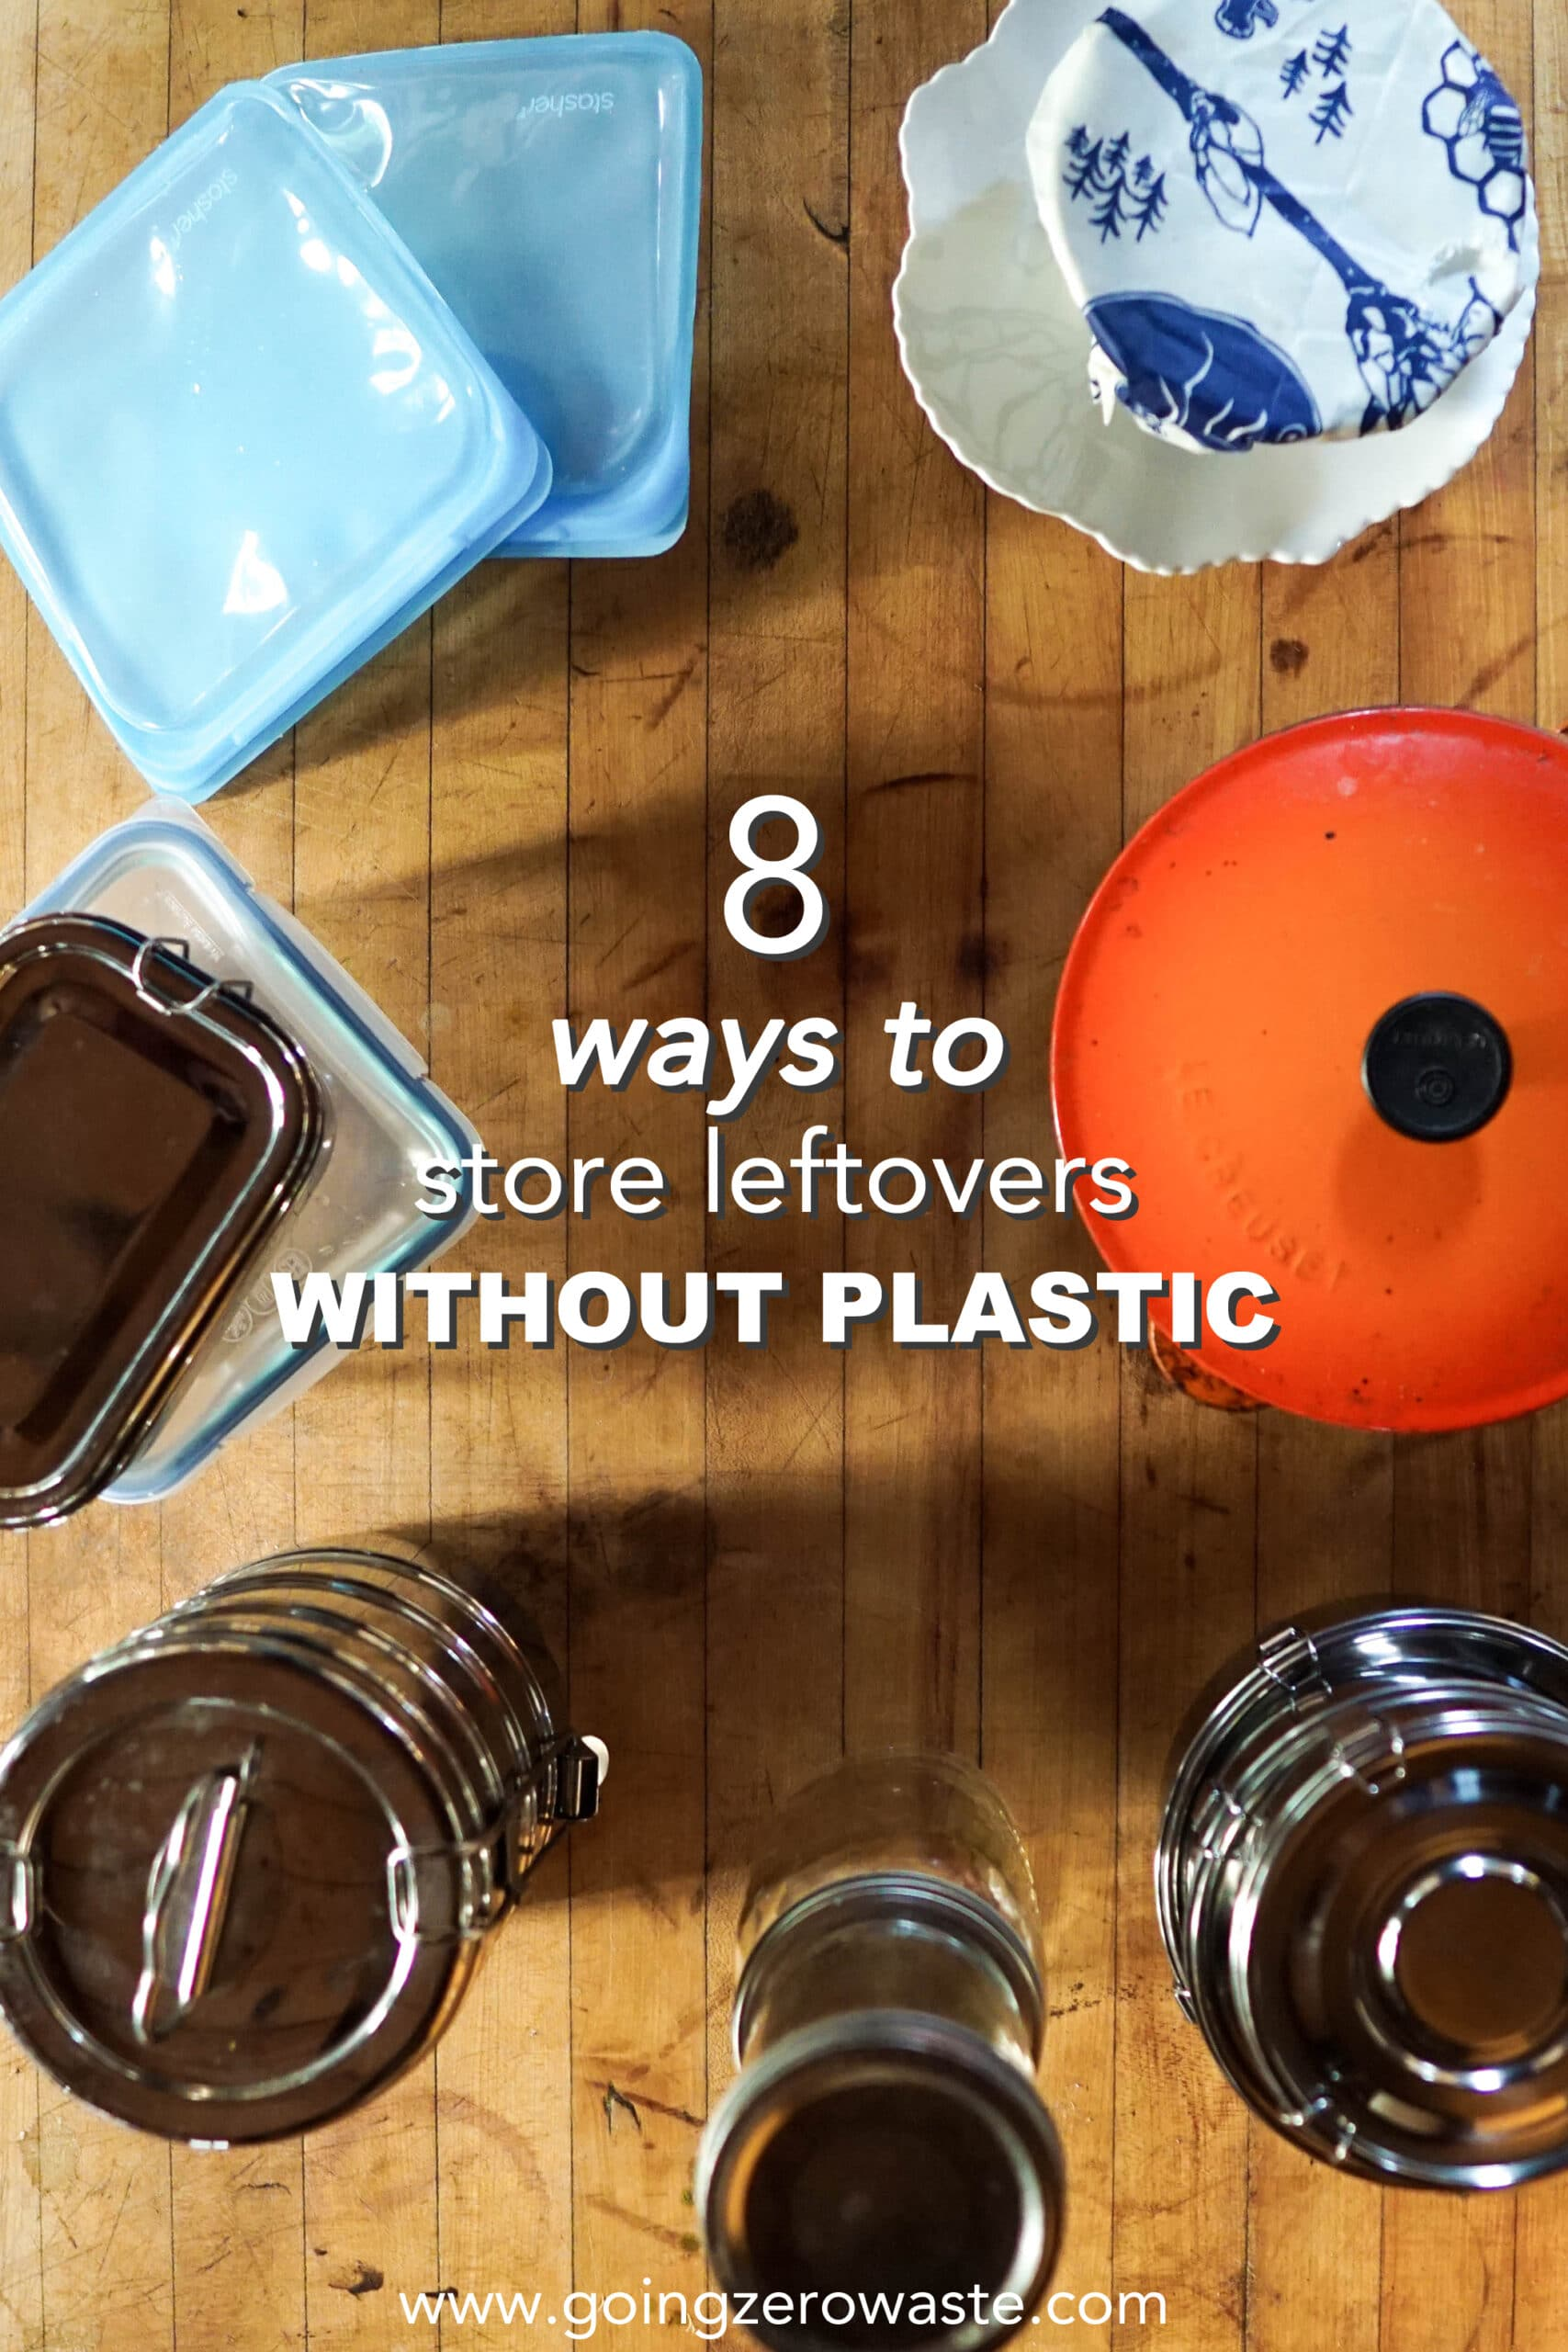 8 Ways to Store Food Without Plastic from www.goingzerowaste.com #zerowaste #ecofriendly #gogreen #sustainable #storefood #plasticfree